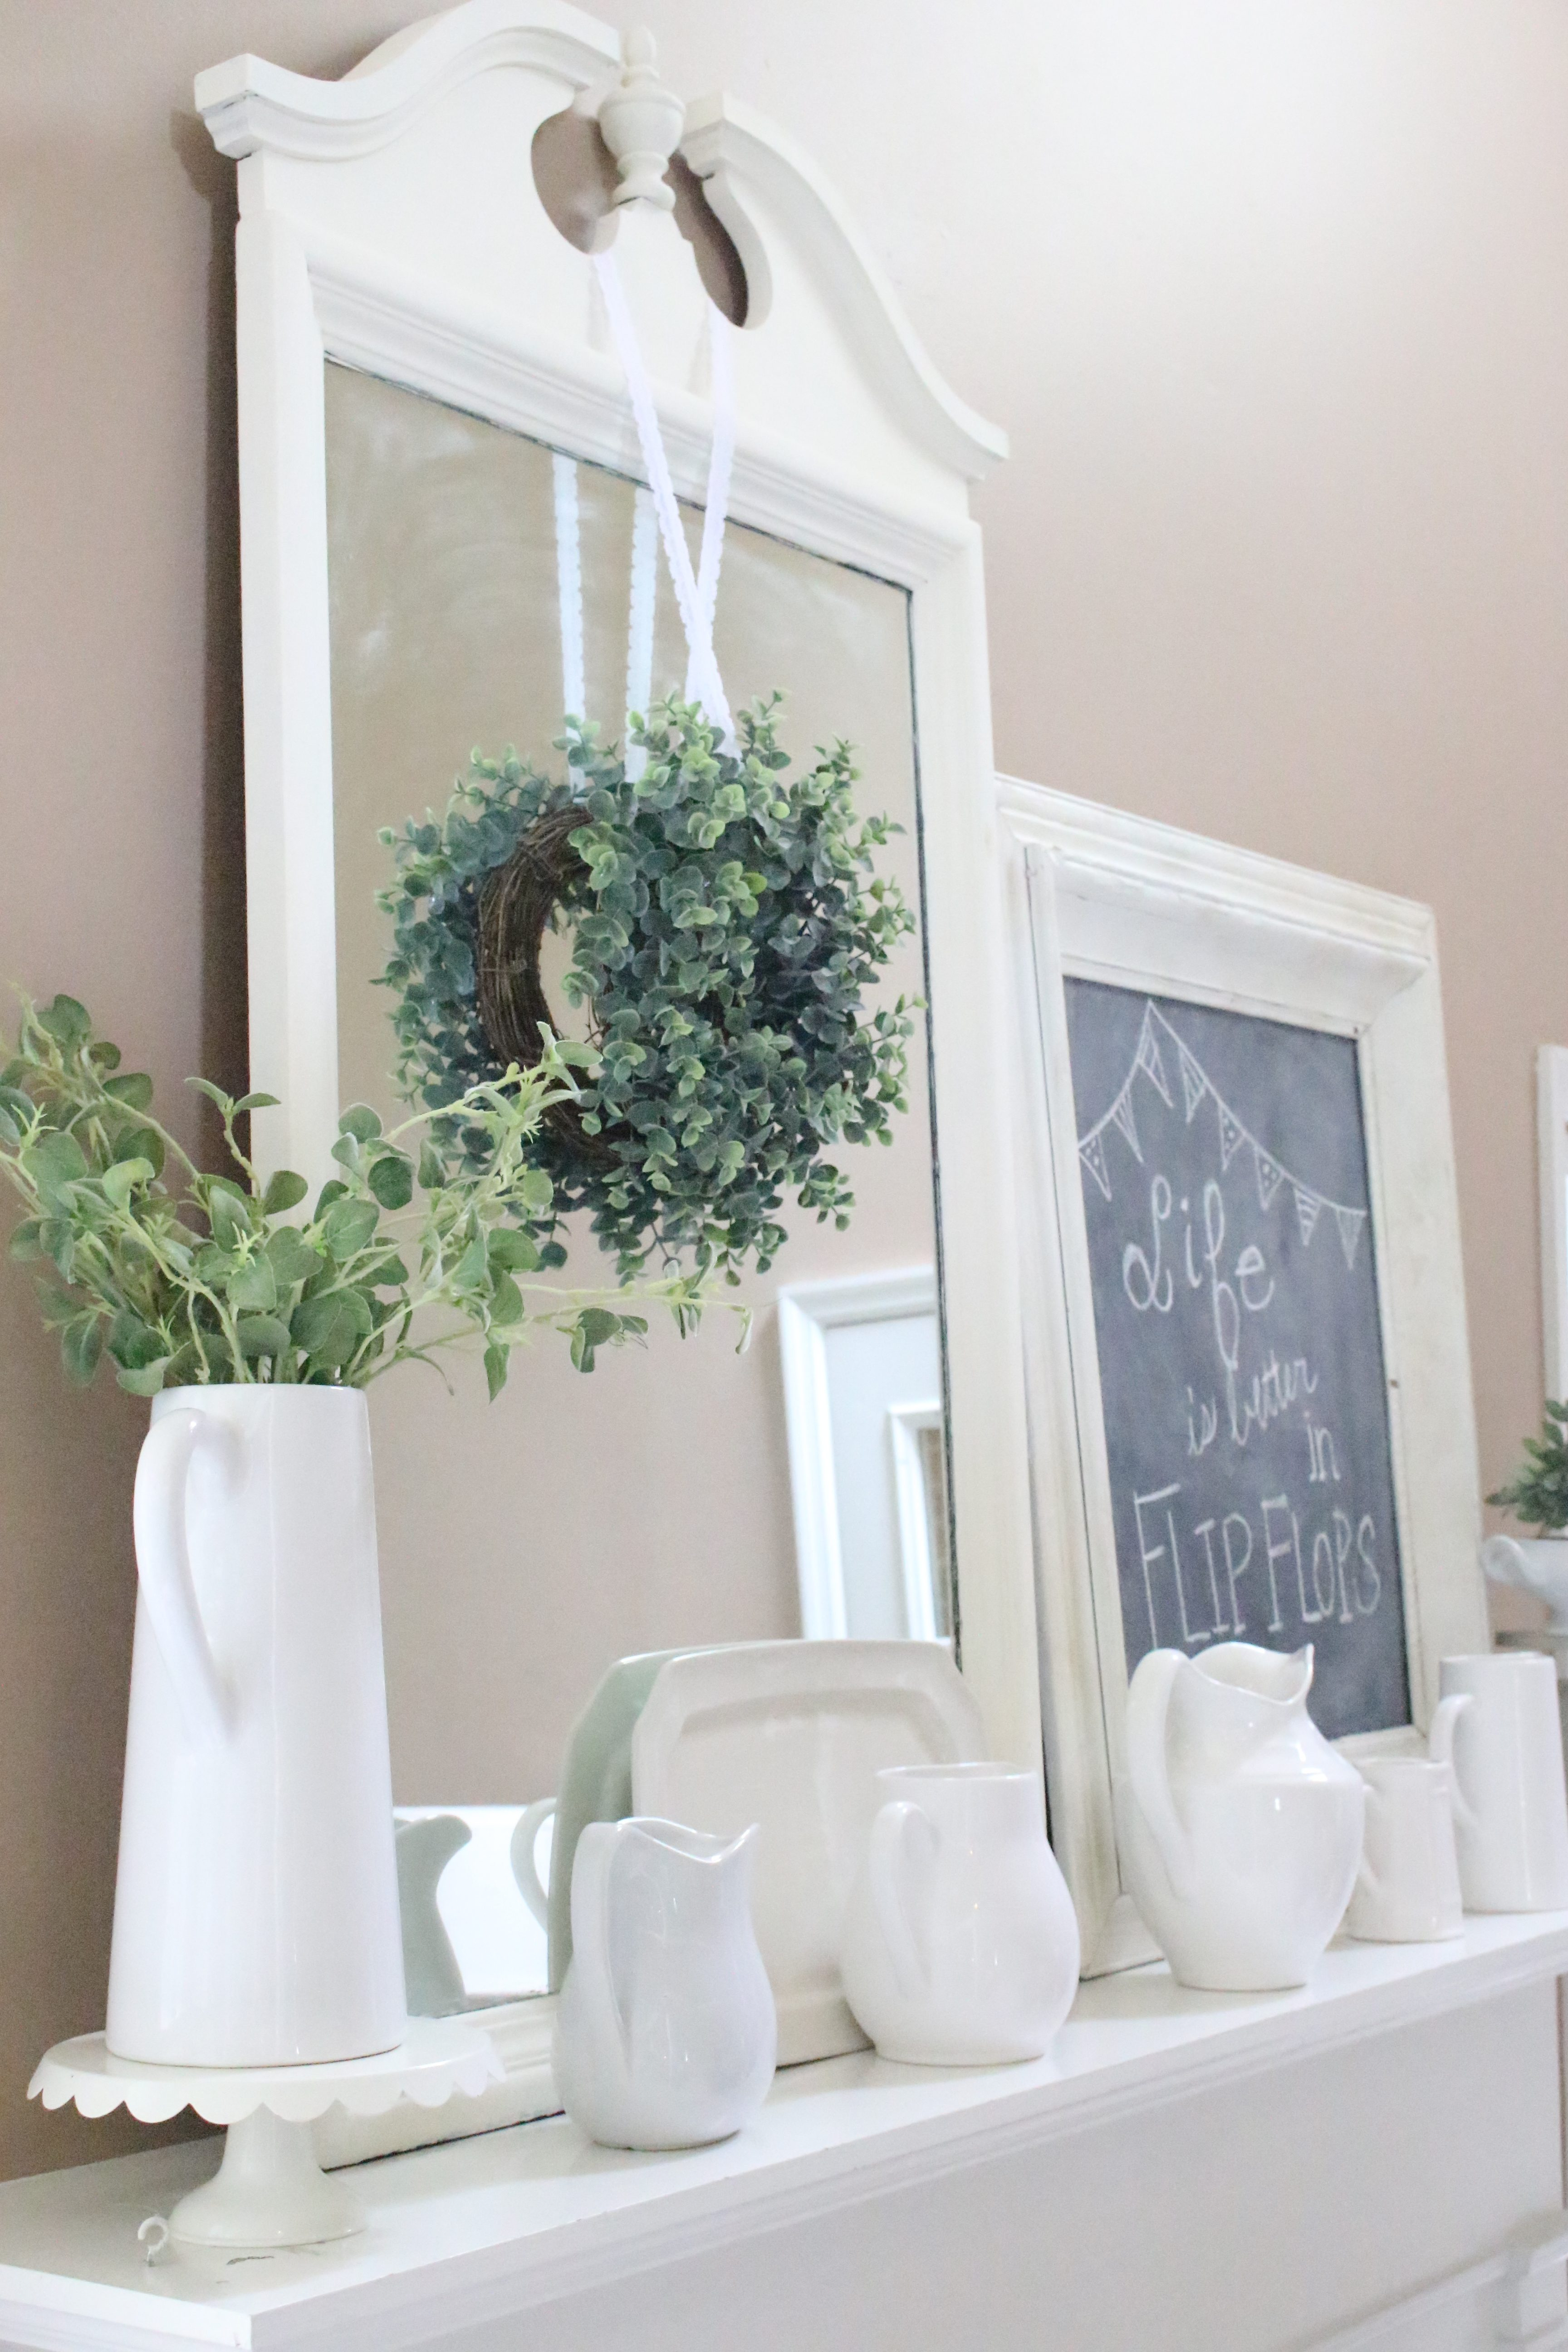 Summer Mantel- Mantle- summer decor- decorating your mantel for summer- fireplace decorating- summer ideas- summer decorating- farmhouse mantel- neutral decor- neutral mantel- chalkboard- white pitchers displayed- mantel displays